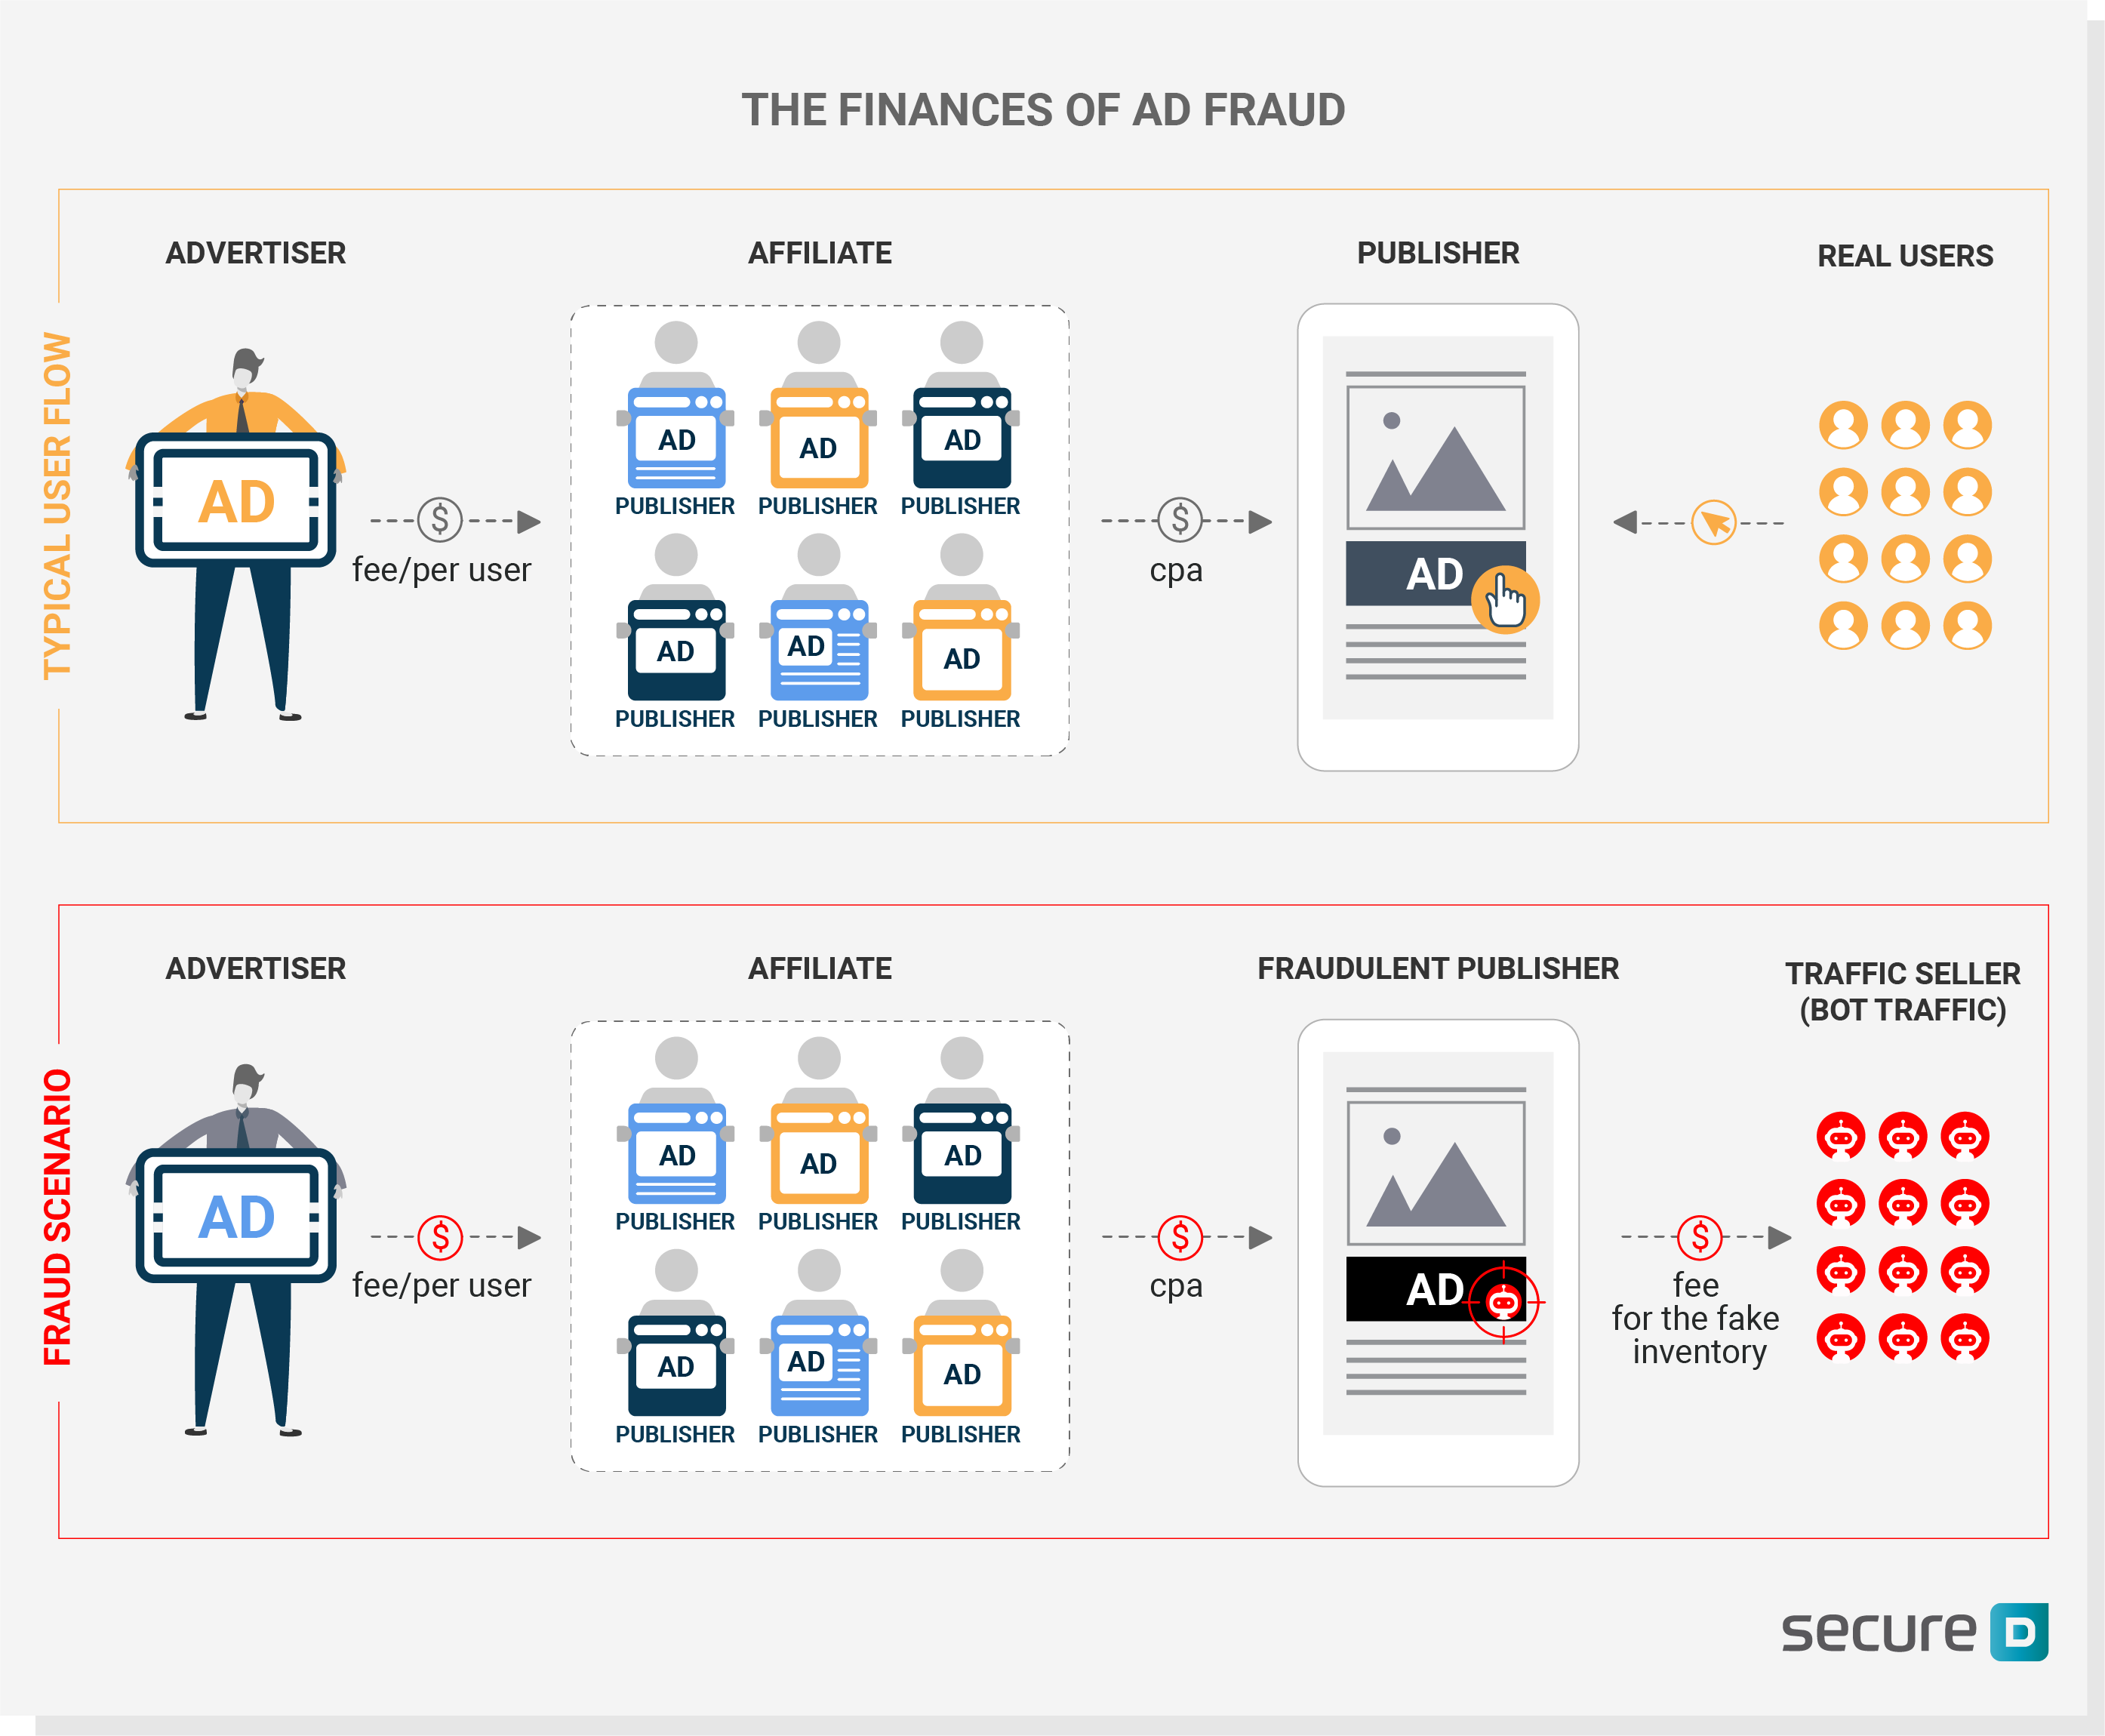 the finances of ad fraud